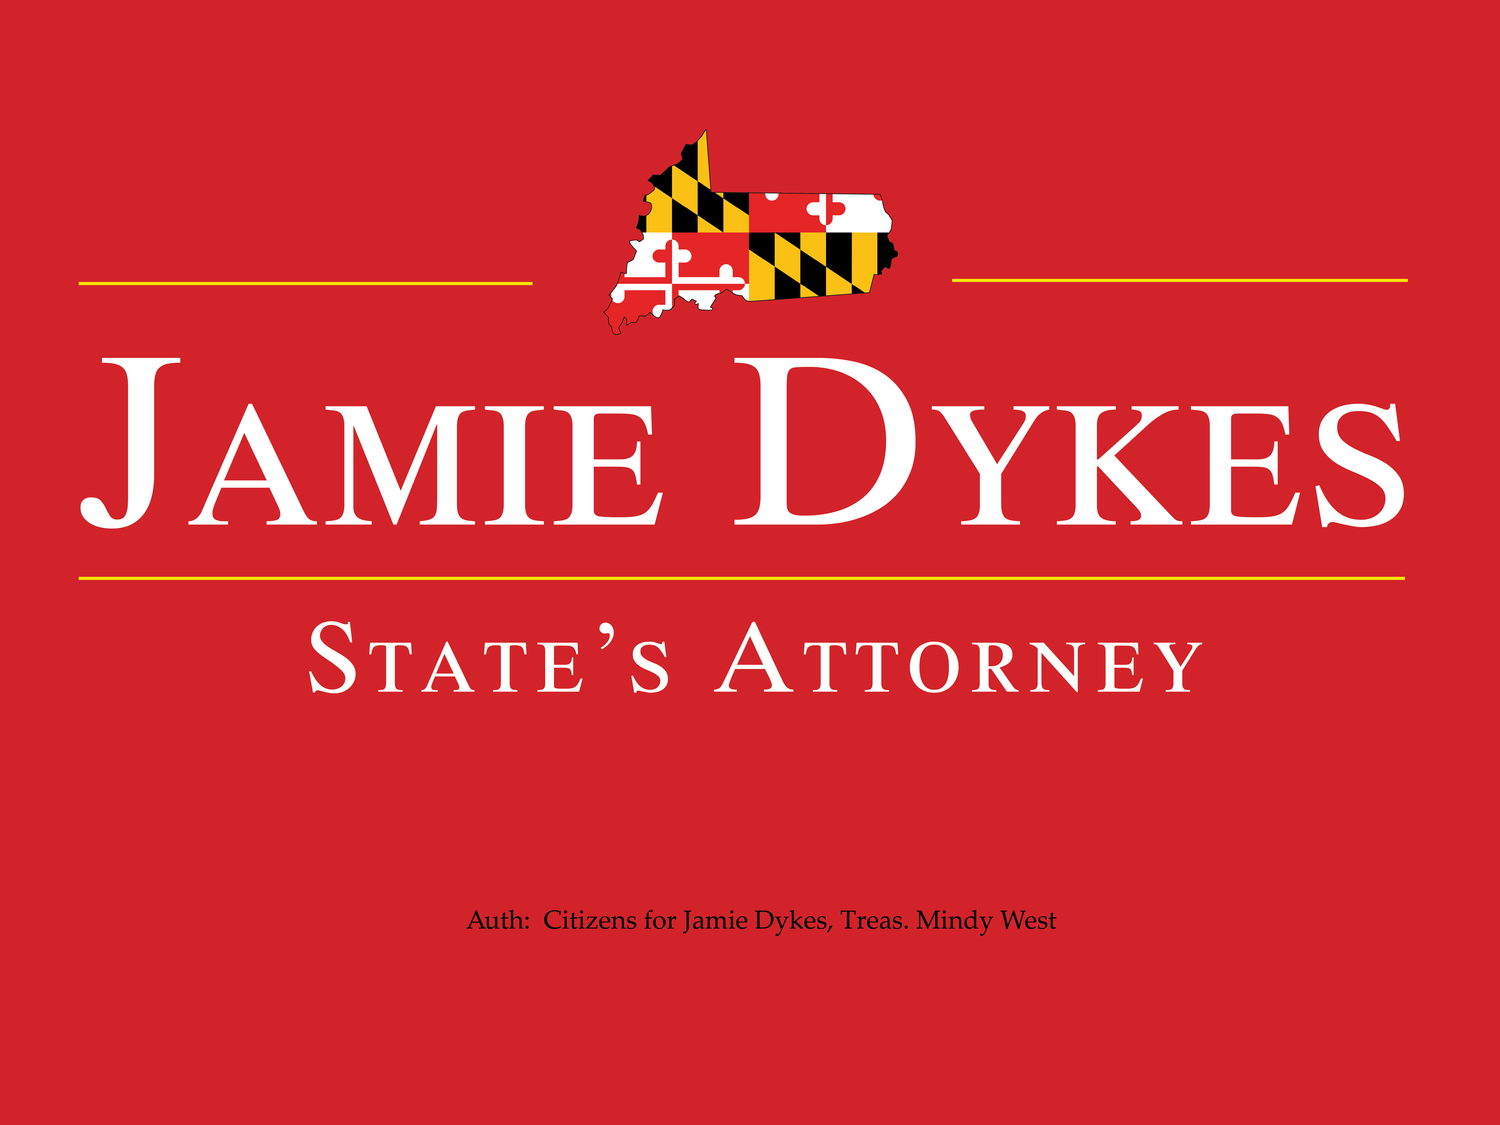 Jamie Dykes for State's Attorney